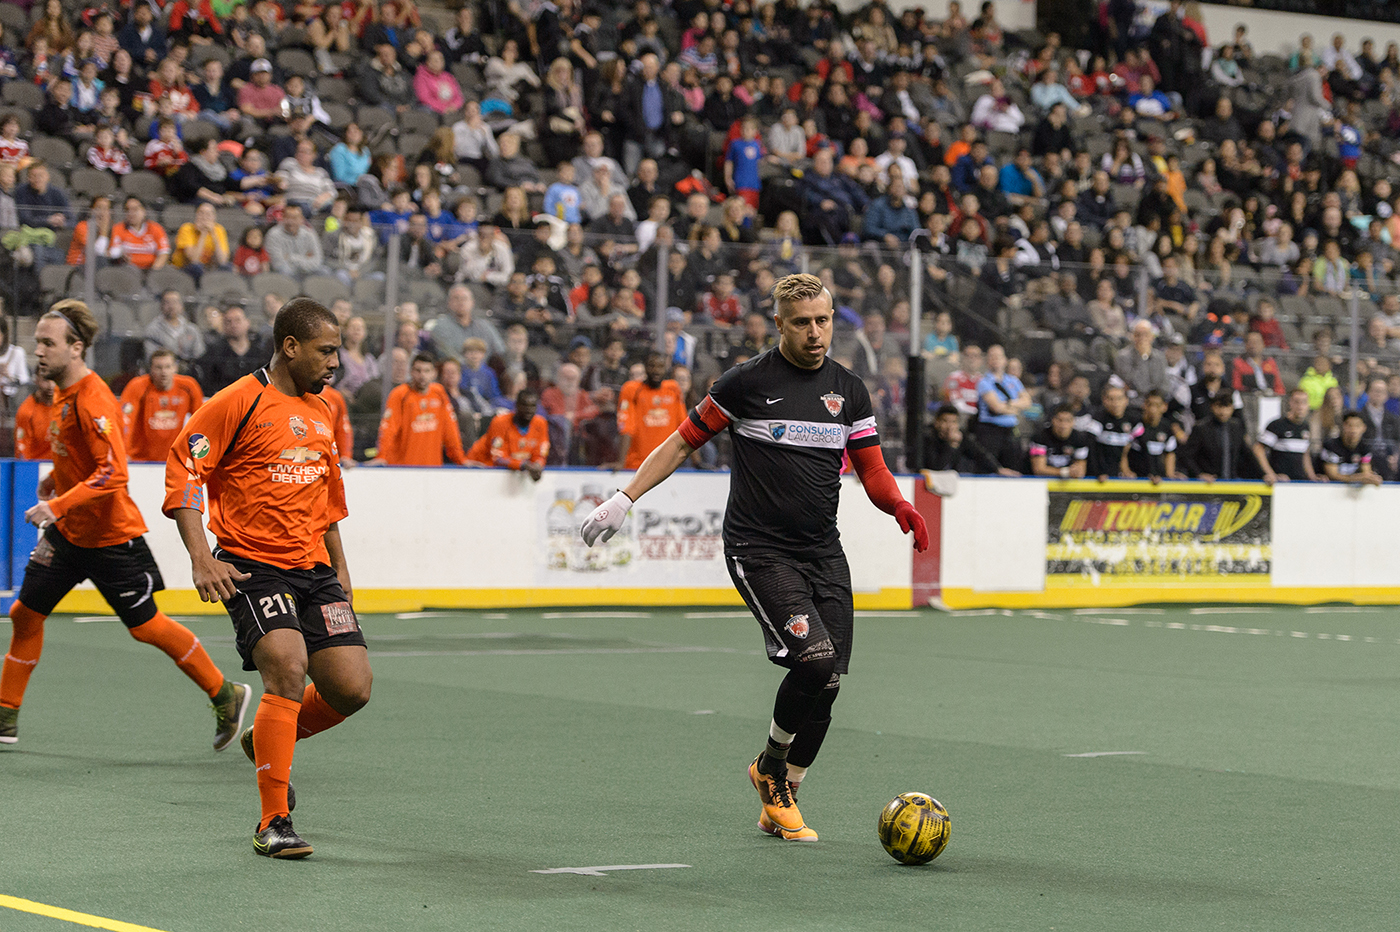 Hoffman Estates, IL, USA, January 30, 2016:  Major Arena Soccer League action between the Syracuse Silver Knights and the Chicago Mustangs at the Sears Centre Arena. Photographer: Daniel Bartel